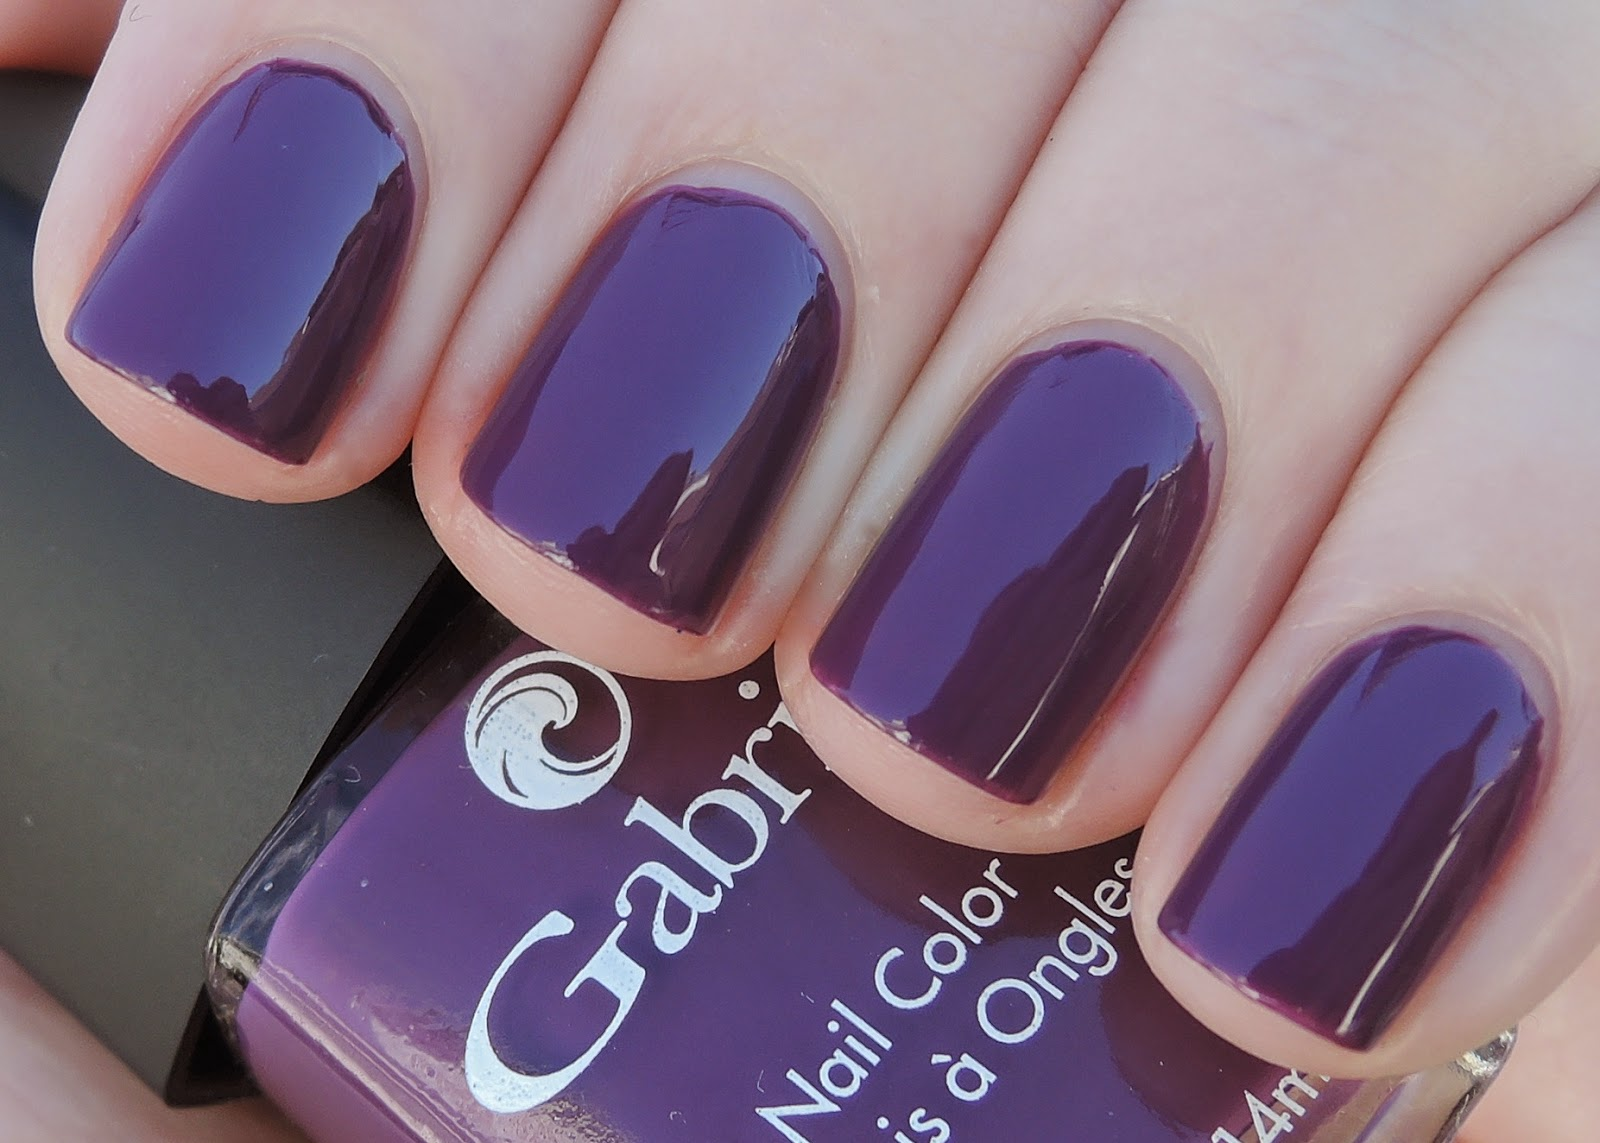 Gabriel Cosmetics Southern Belle